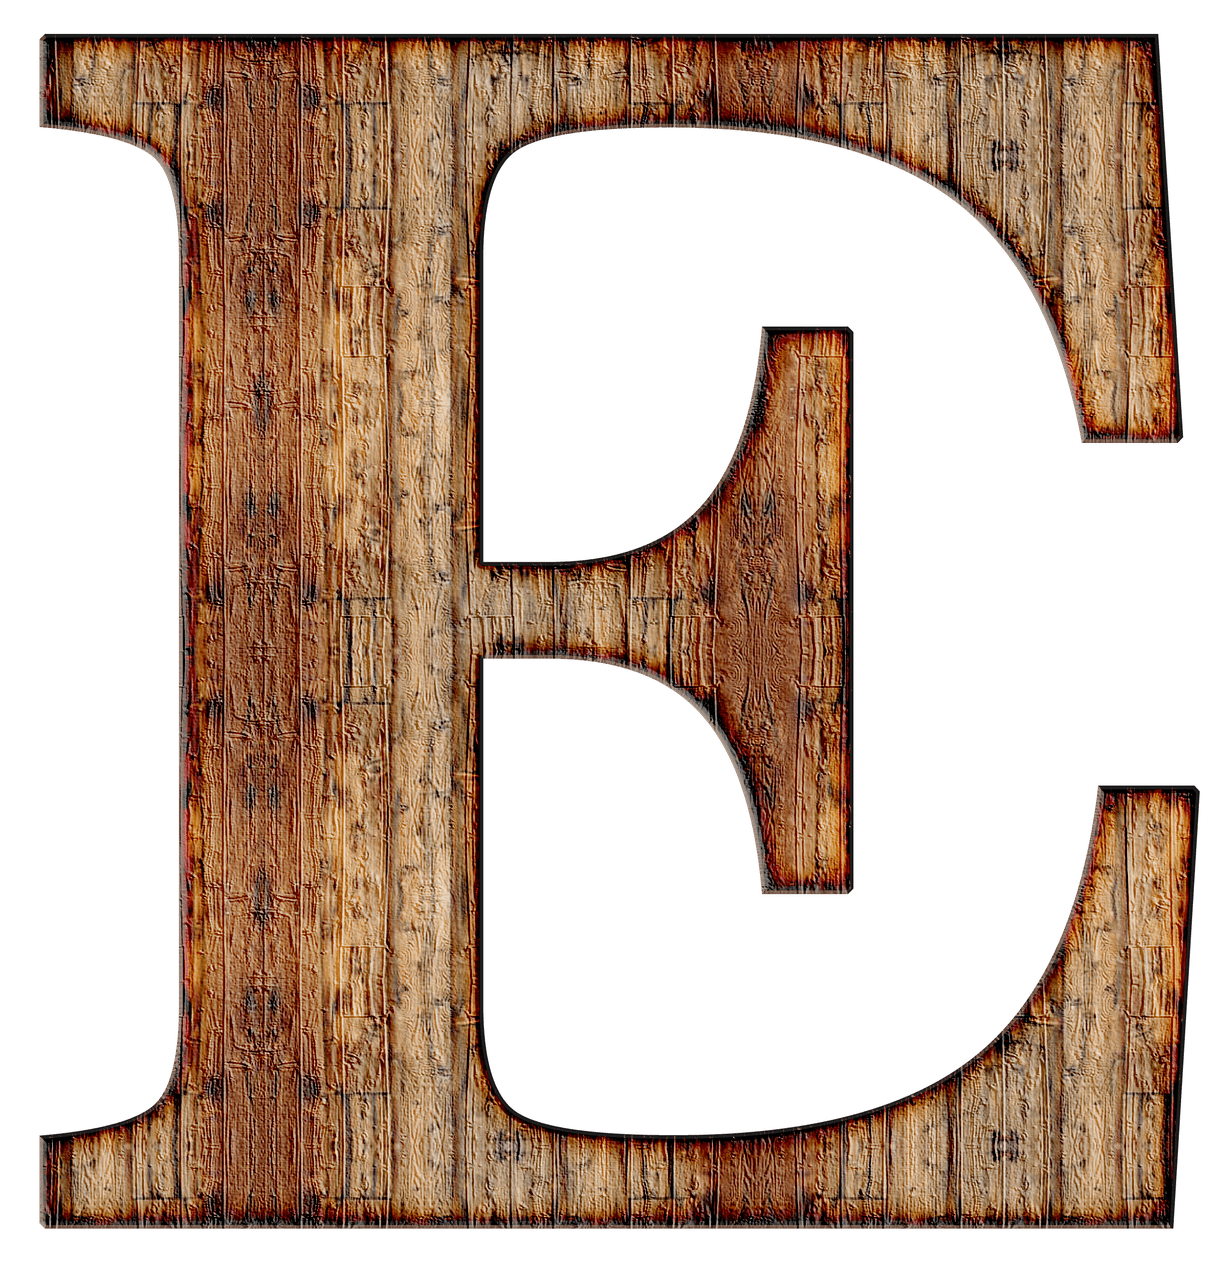 Alphabet wood png. Wooden capital letter e